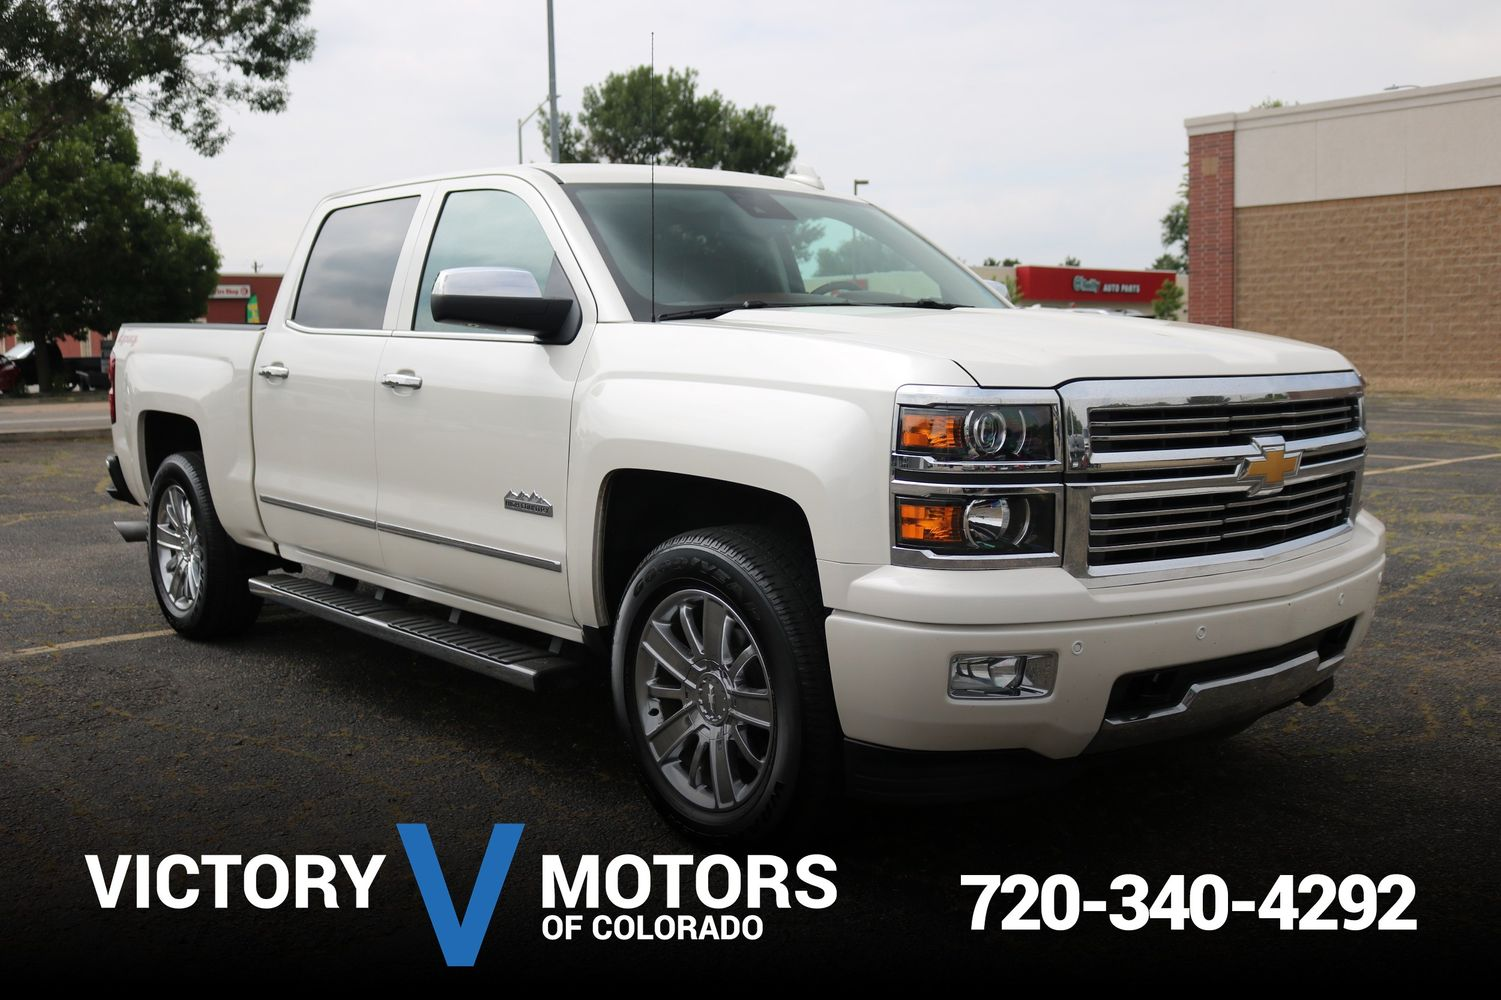 country images media pressroom galleries en vehicles us detail pages high silverado chevrolet content states united photos